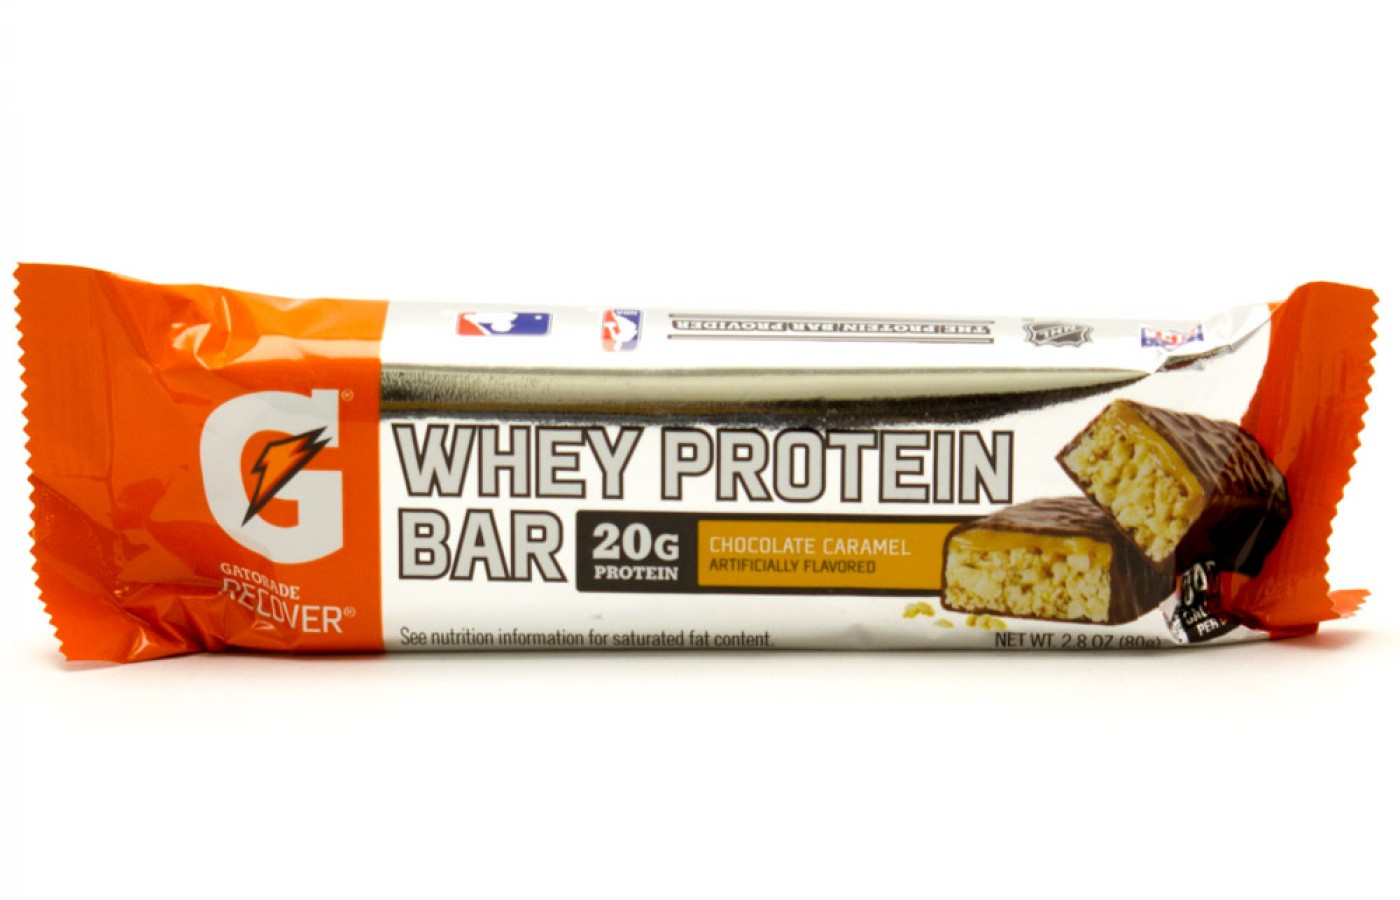 A Gatorade Whey Protein Bar in Chocolate Caramel for those with a sweet tooth.